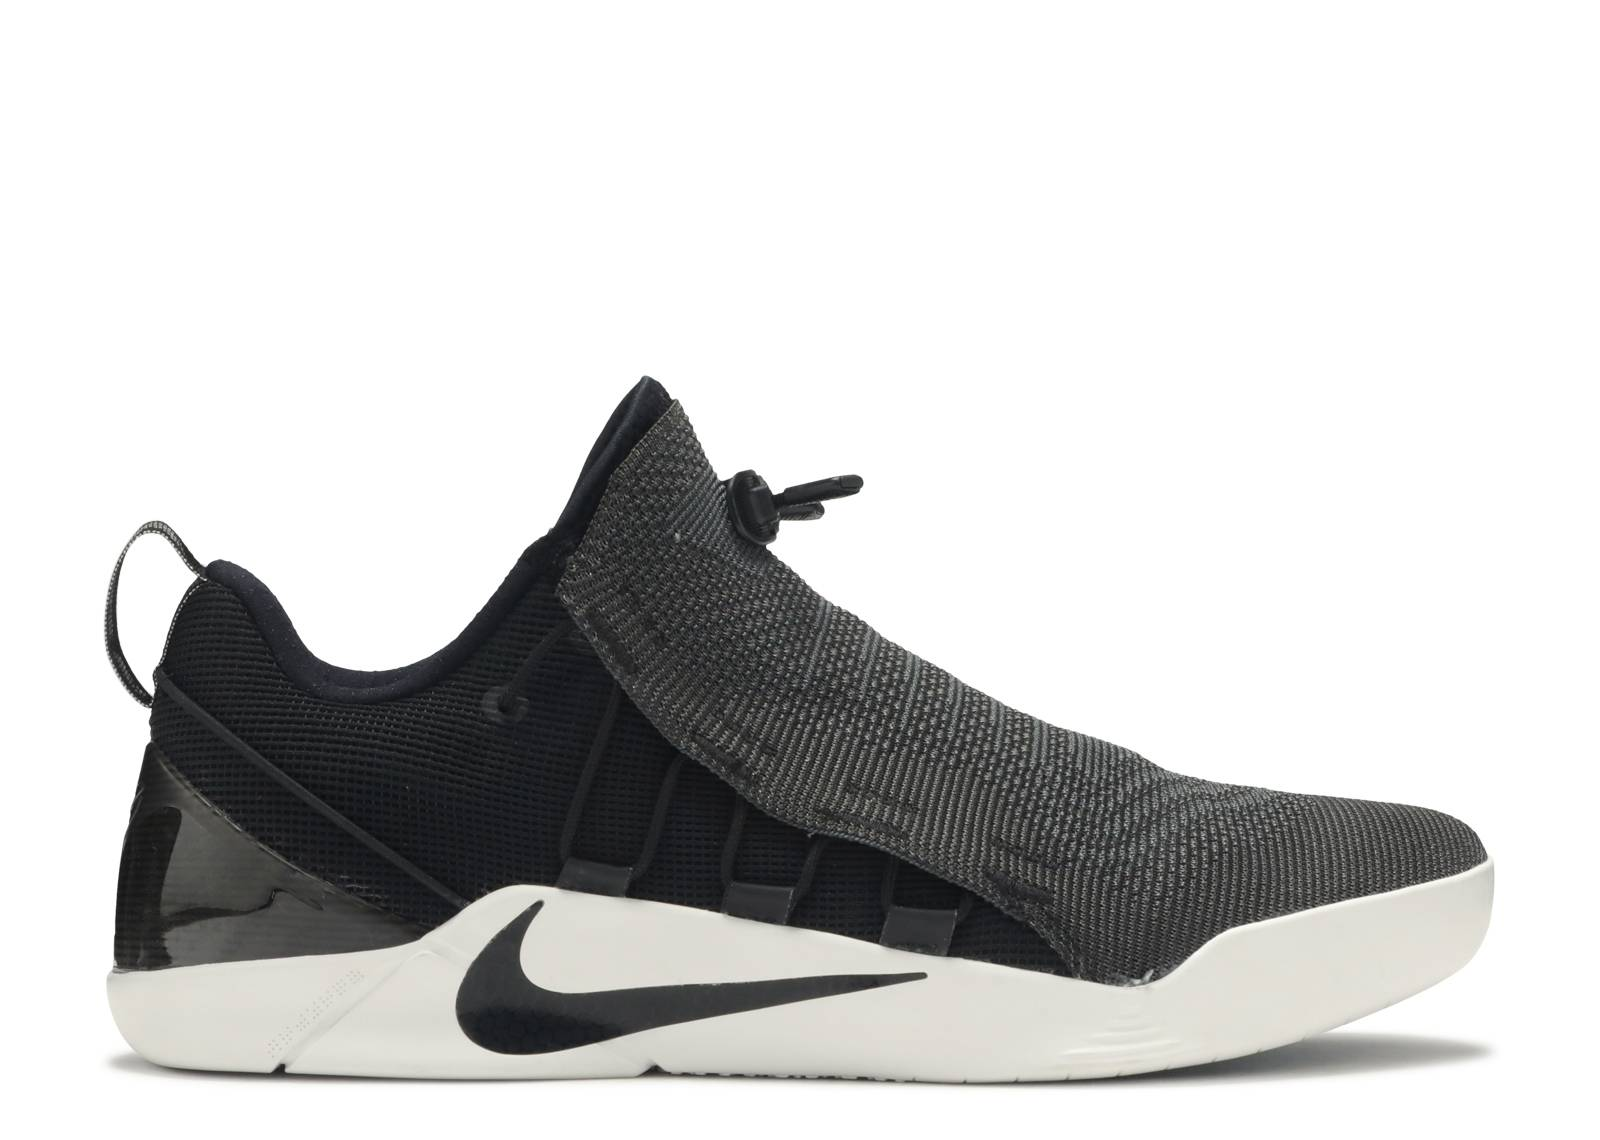 uk availability f94d8 0ddbe Kobe A.D. NXT - Nike - 882049 007 - black metallic silver-white ...